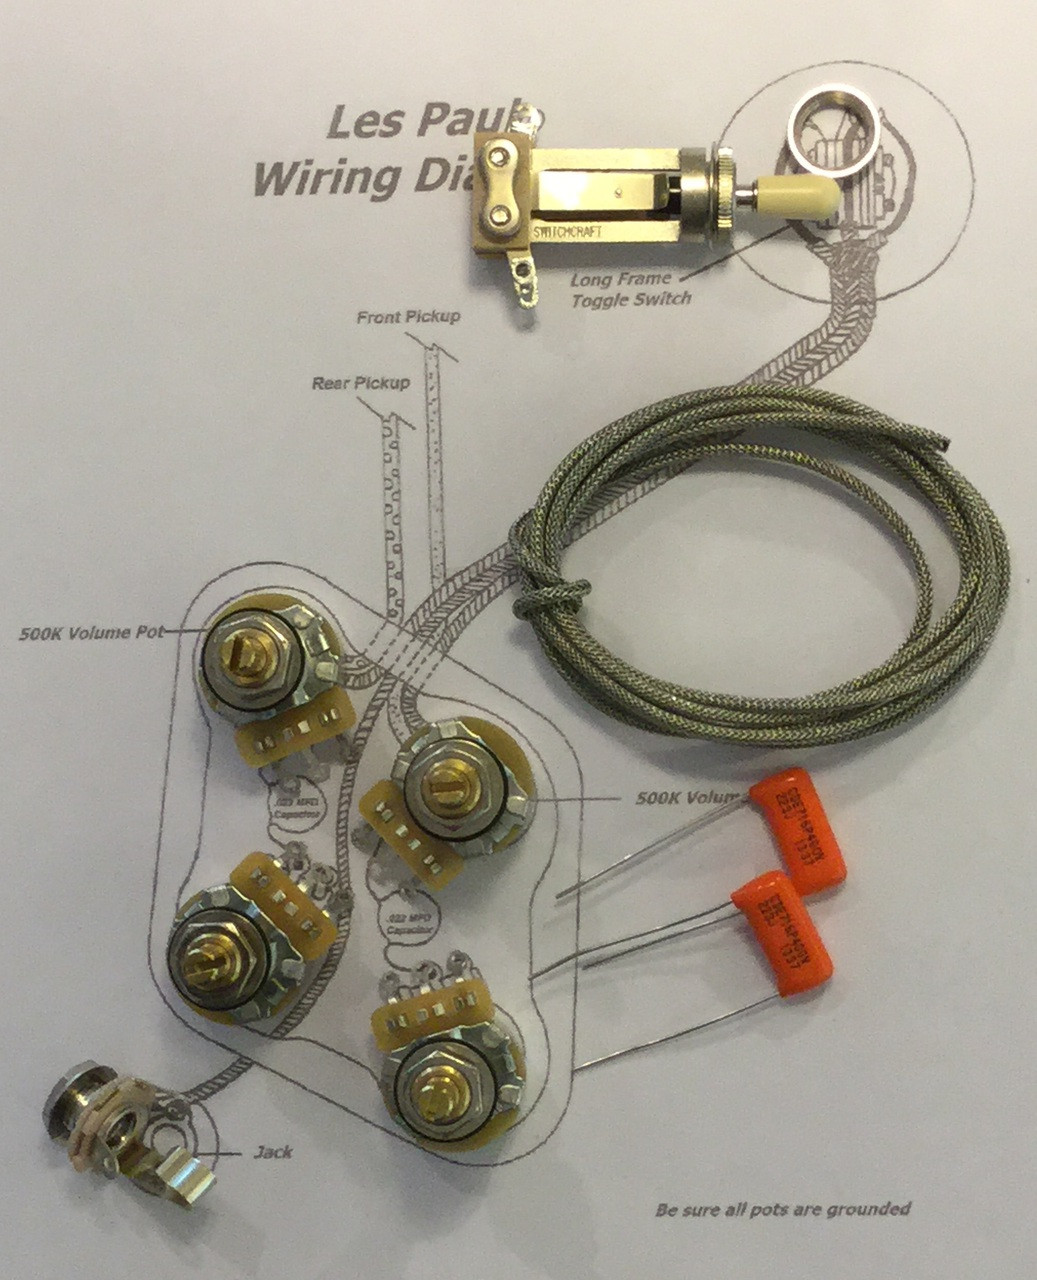 hight resolution of wiring kit gibson les paul long shaft cts taot 500kxl pots les paul wiring diagram 50 s les paul wiring kit